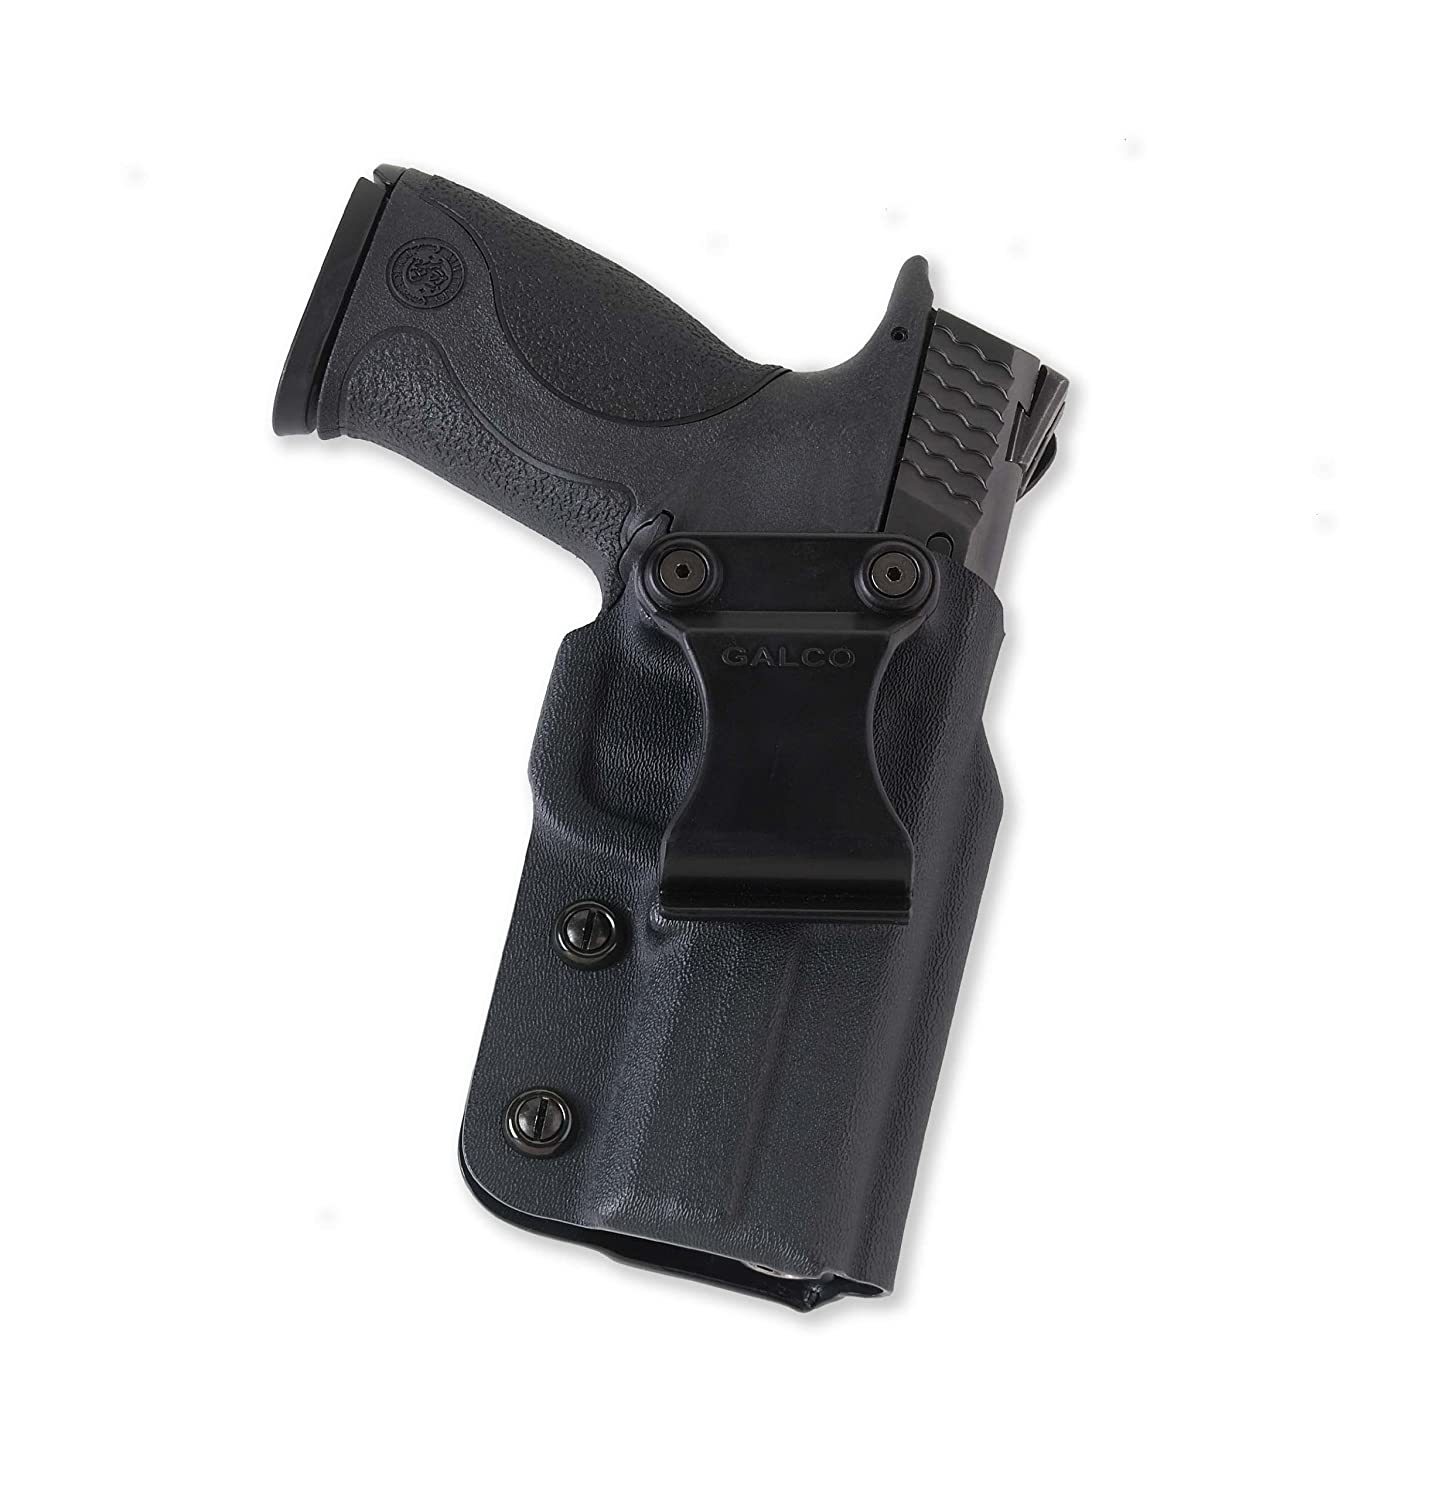 Galco Triton Kydex IWB Holster for Glock 19, 23, 32 (Black, Right-hand)